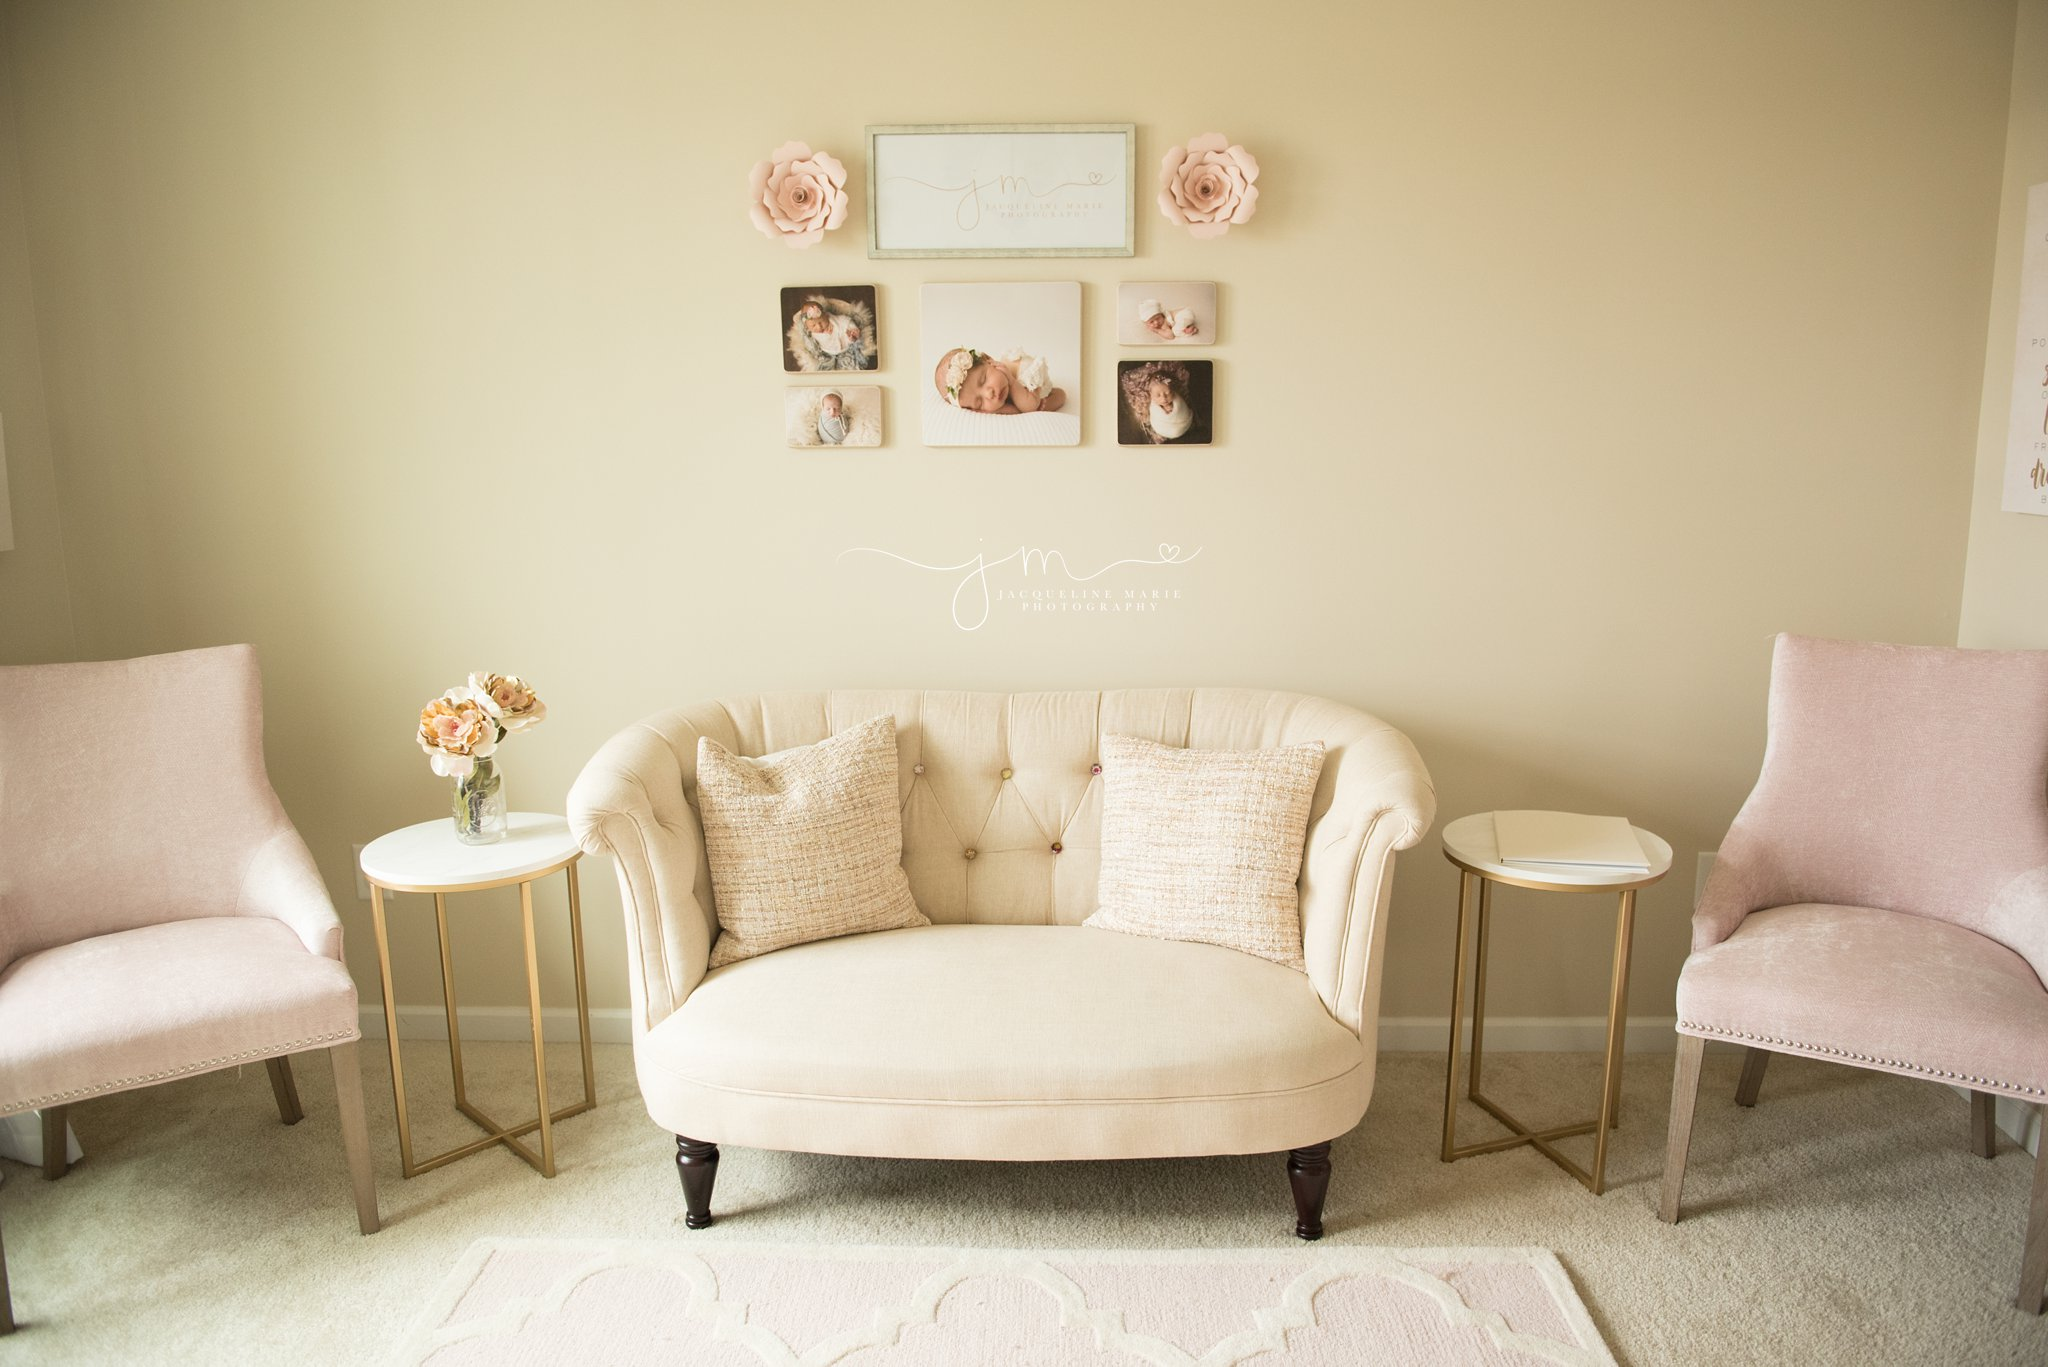 newborn photography studio inspiration features a cream couch and pink chairs to welcome families